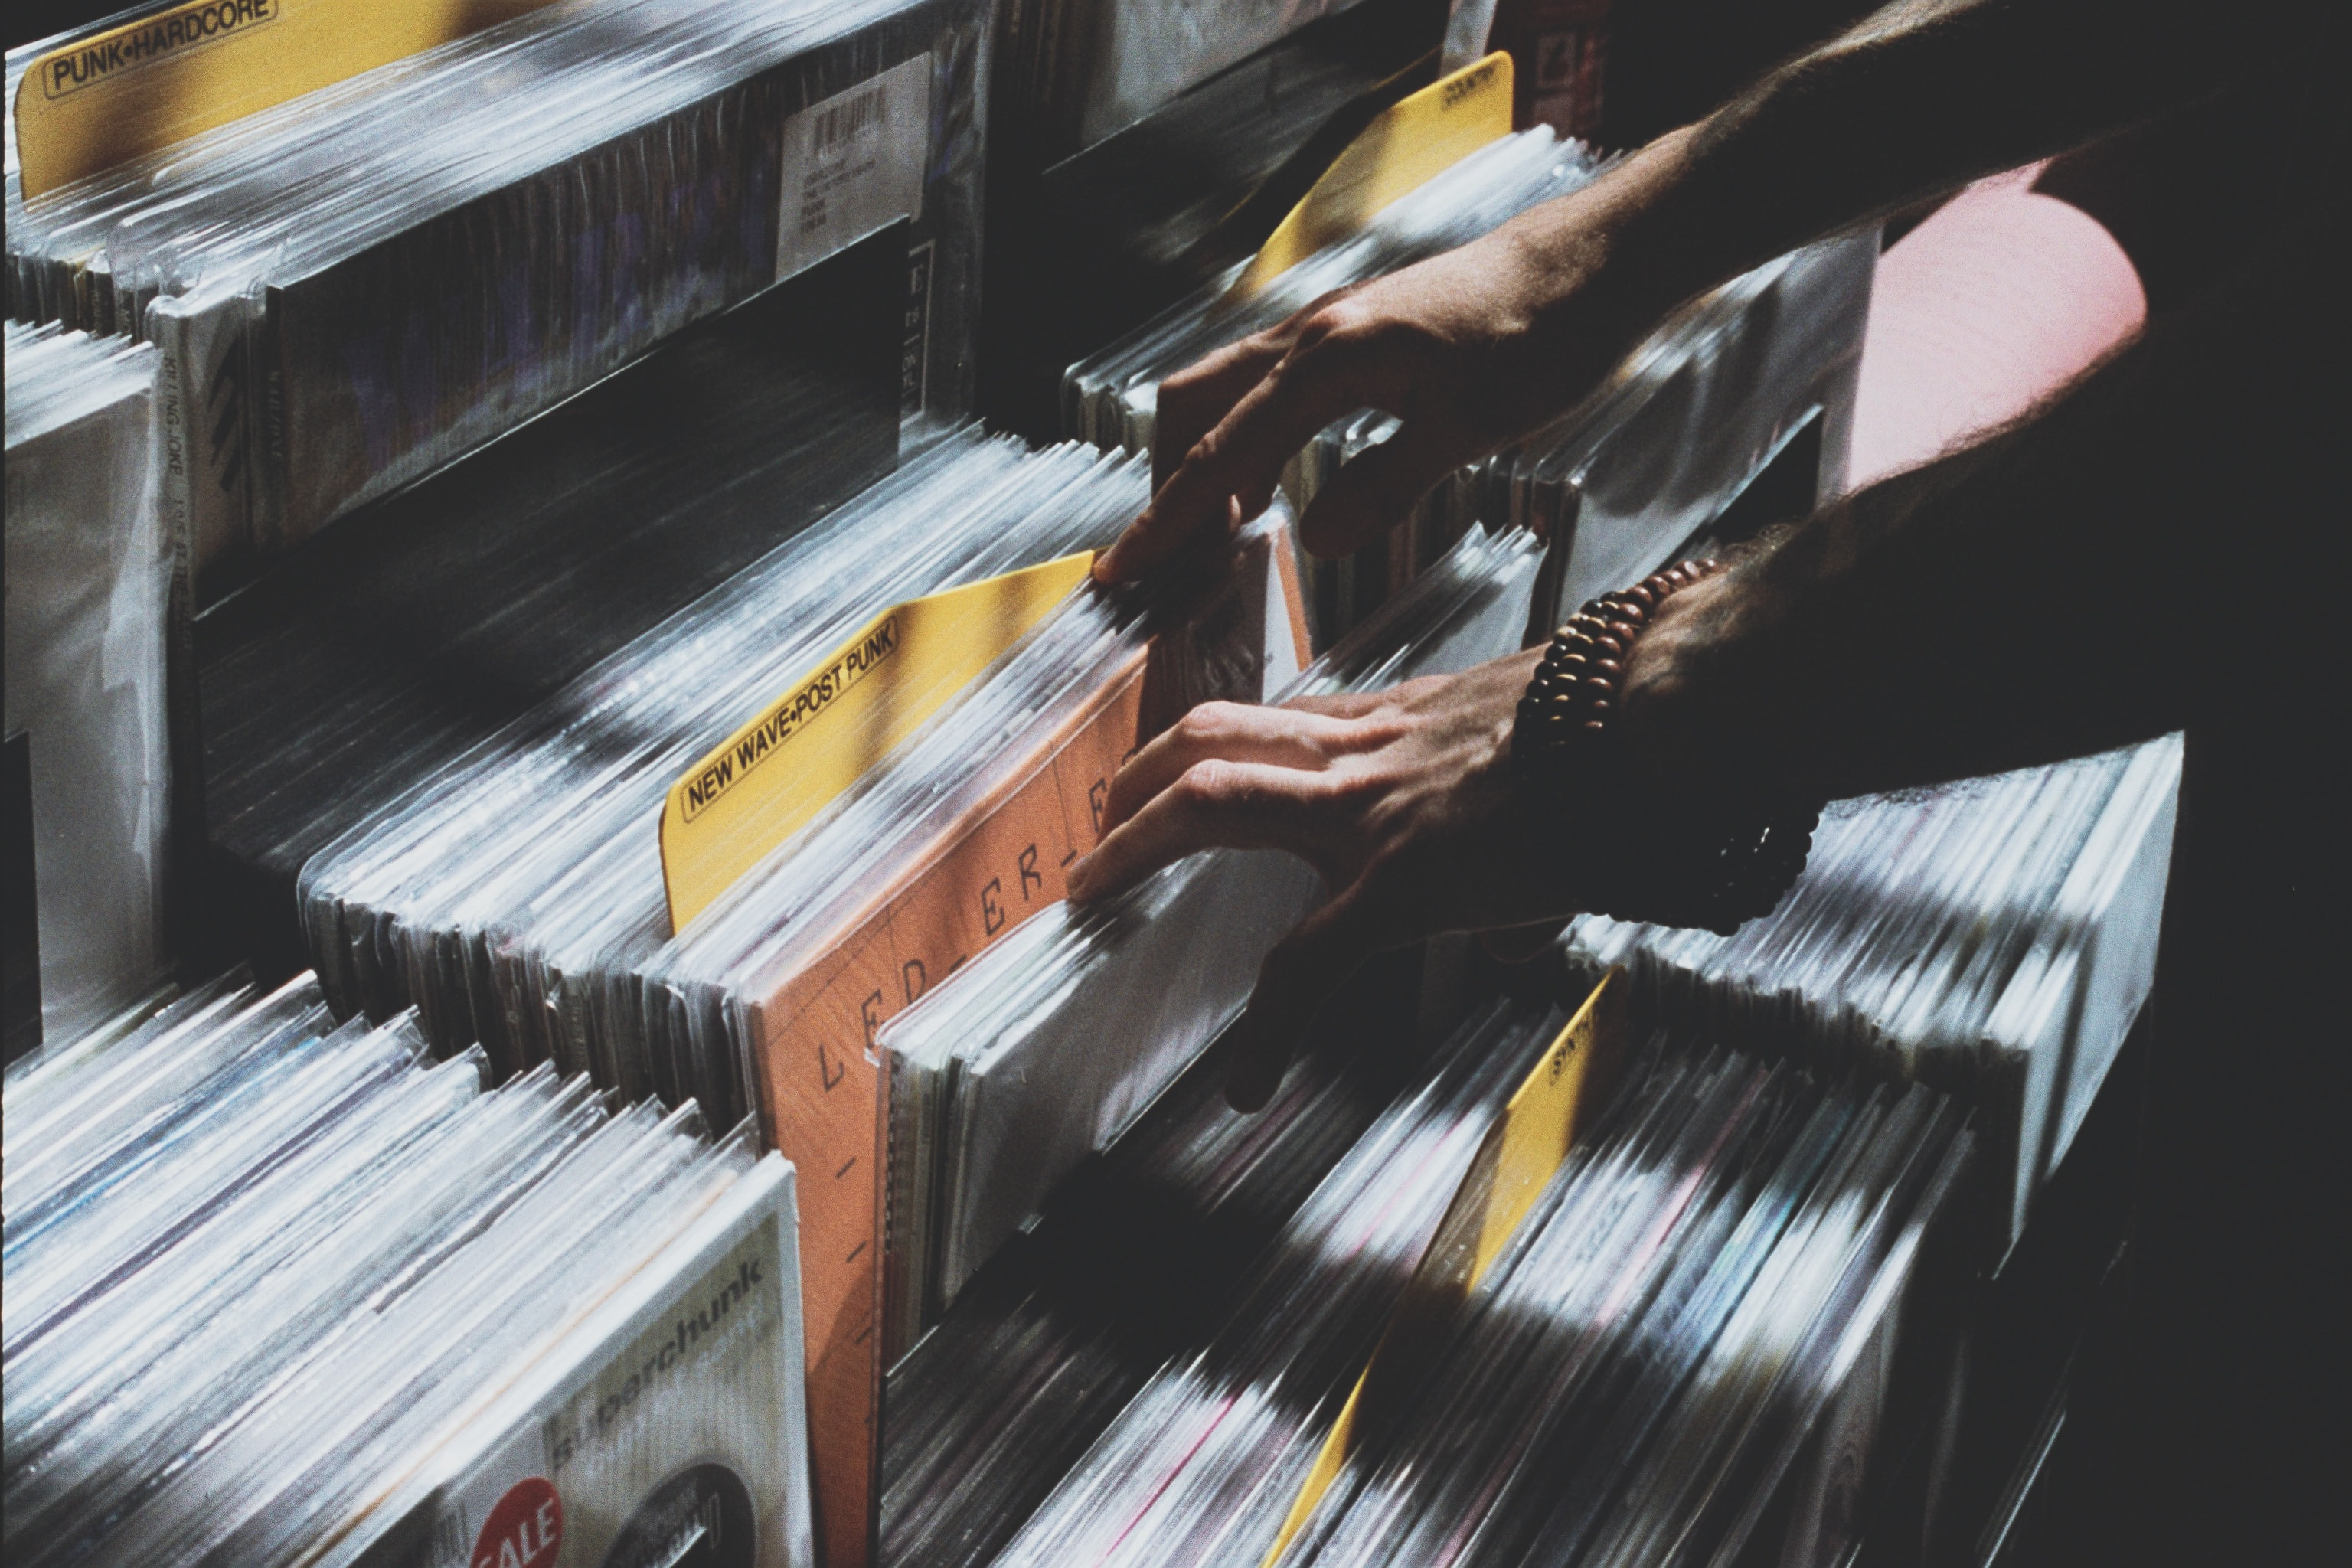 person taking photo of assorted vinyl album